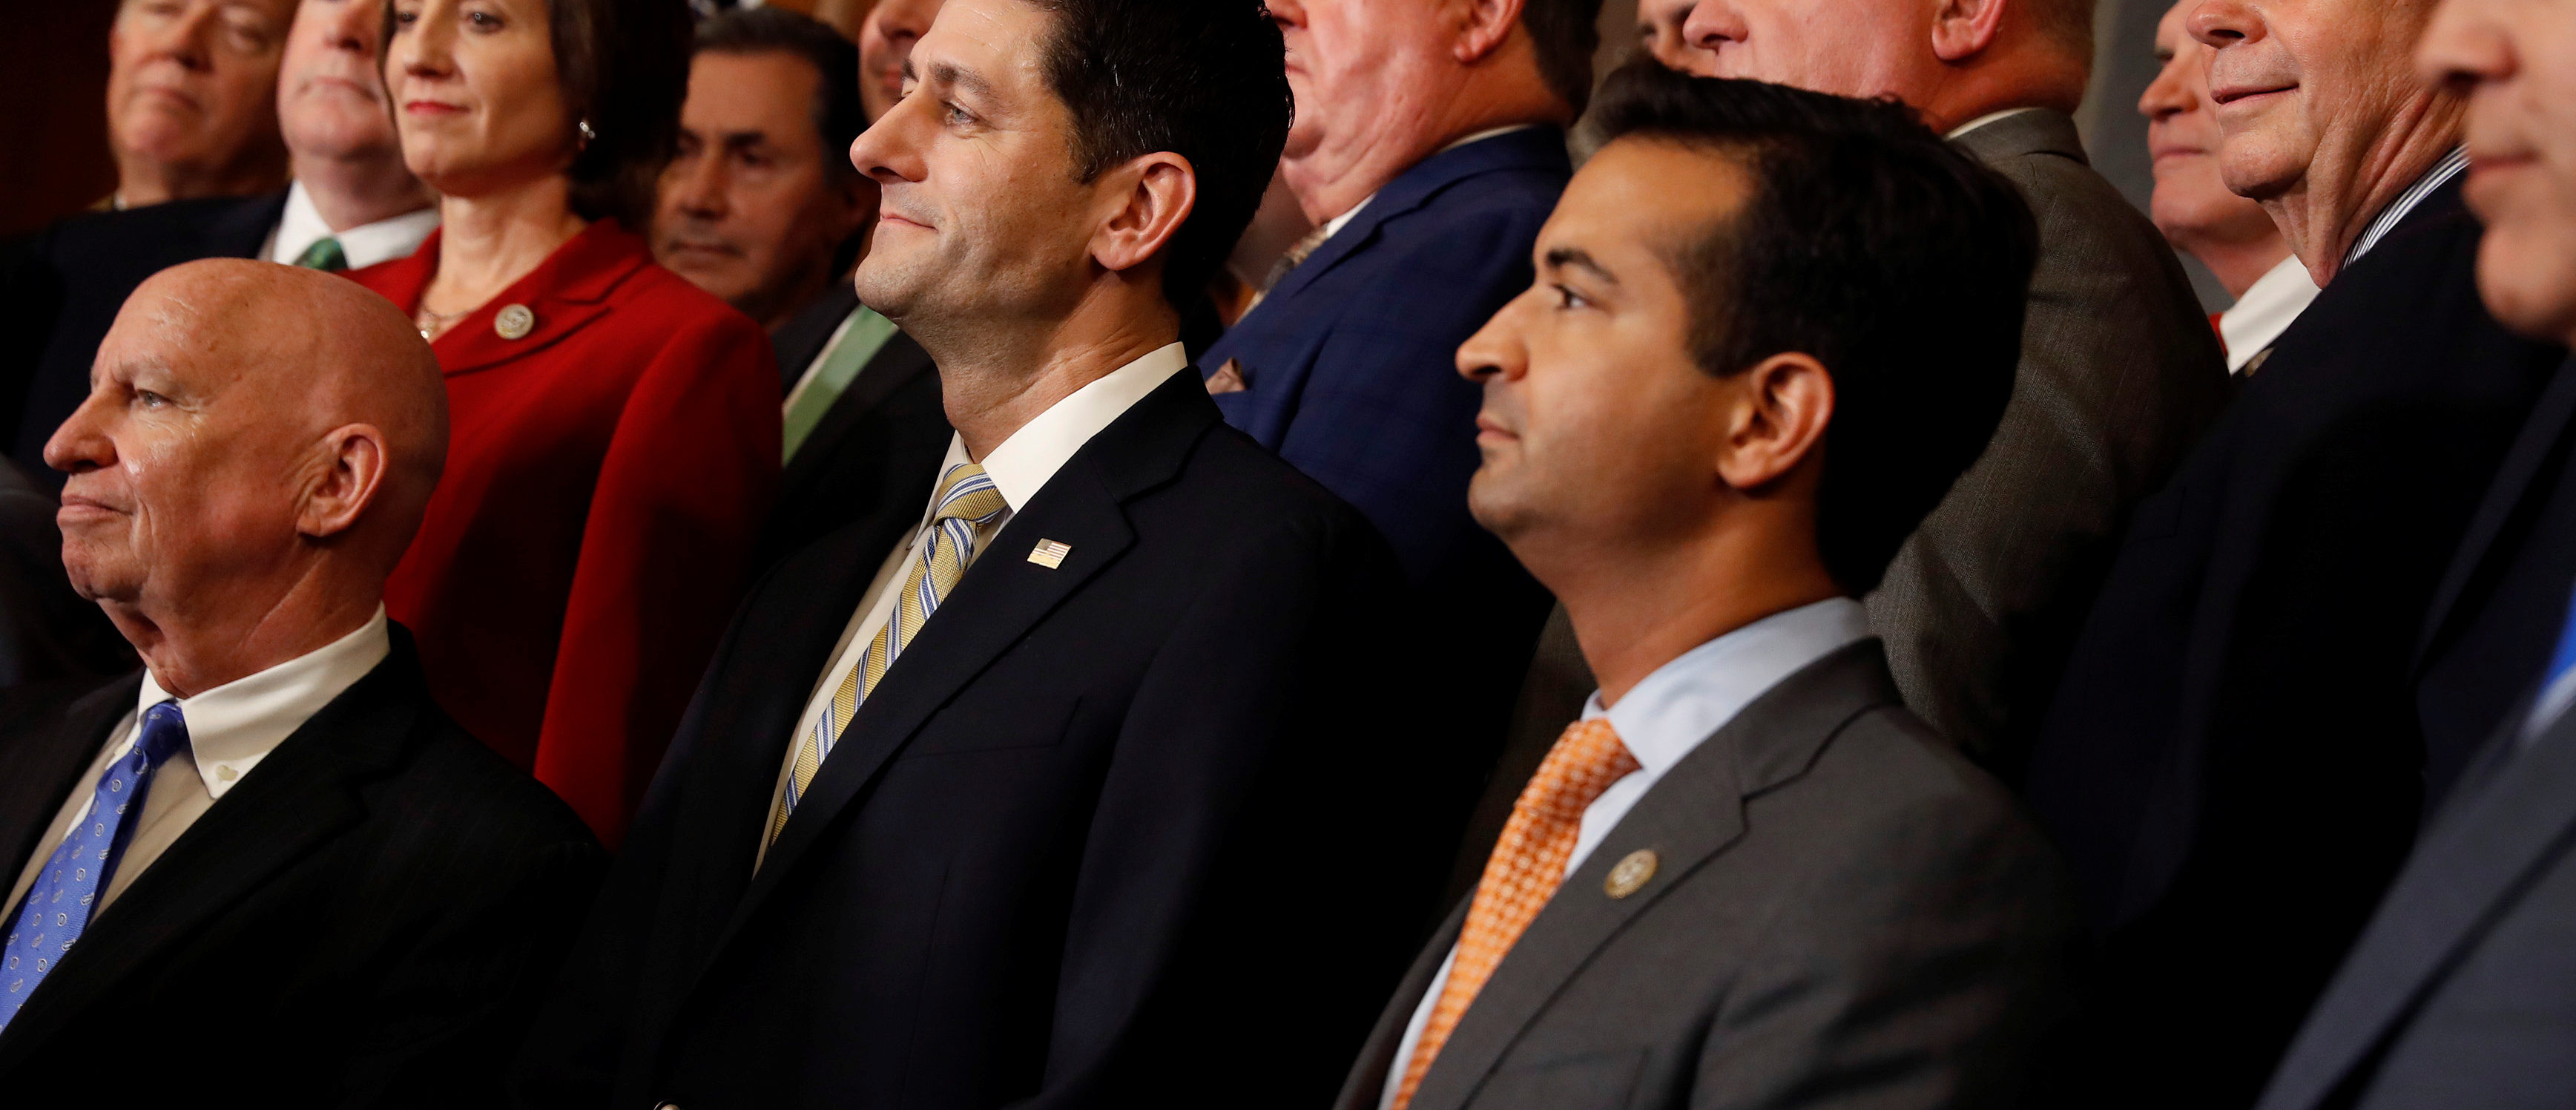 """Rep. Kevin Brady (R-TX), Speaker of the House Paul Ryan and Rep. Carlos Curbelo (R-FL) look on during a news conference announcing the passage of the """"Tax Cuts and Jobs Act"""" at the U.S. Capitol in Washington, U.S., November 16, 2017. REUTERS/Aaron P. Bernstein -"""